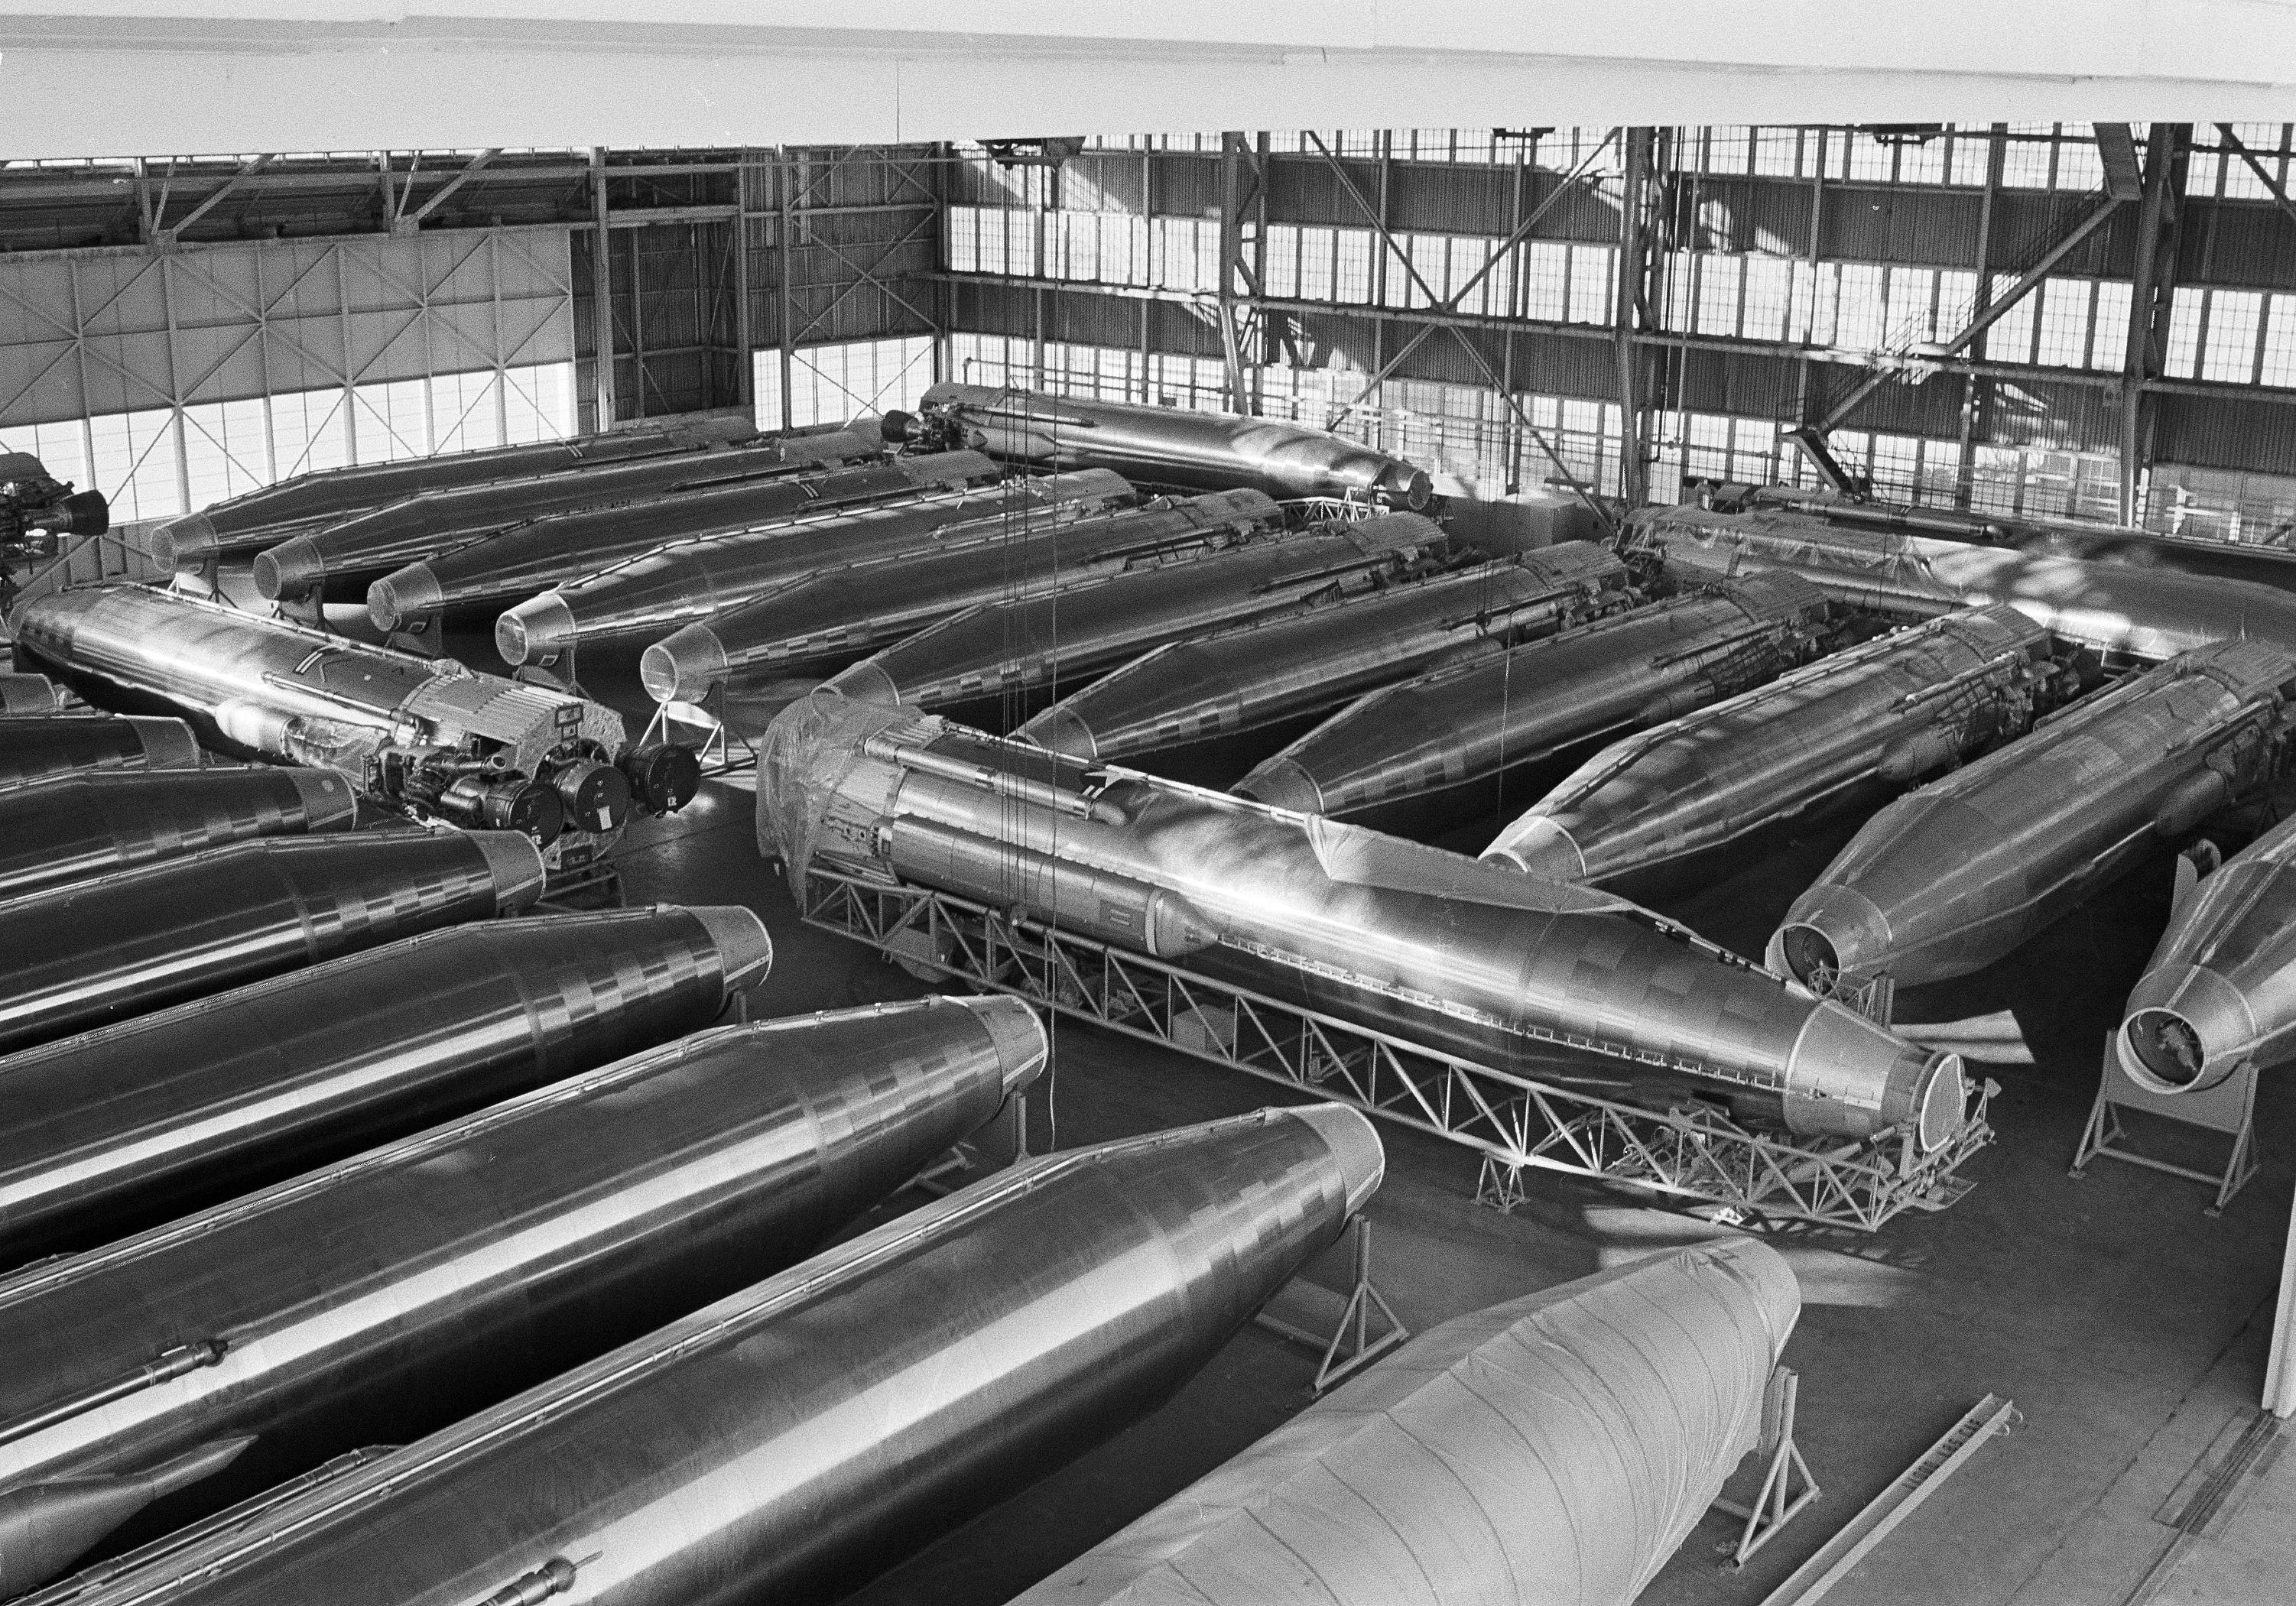 An Ageing Cold War Policy May Make It Easier to Hack Nuclear Warheads